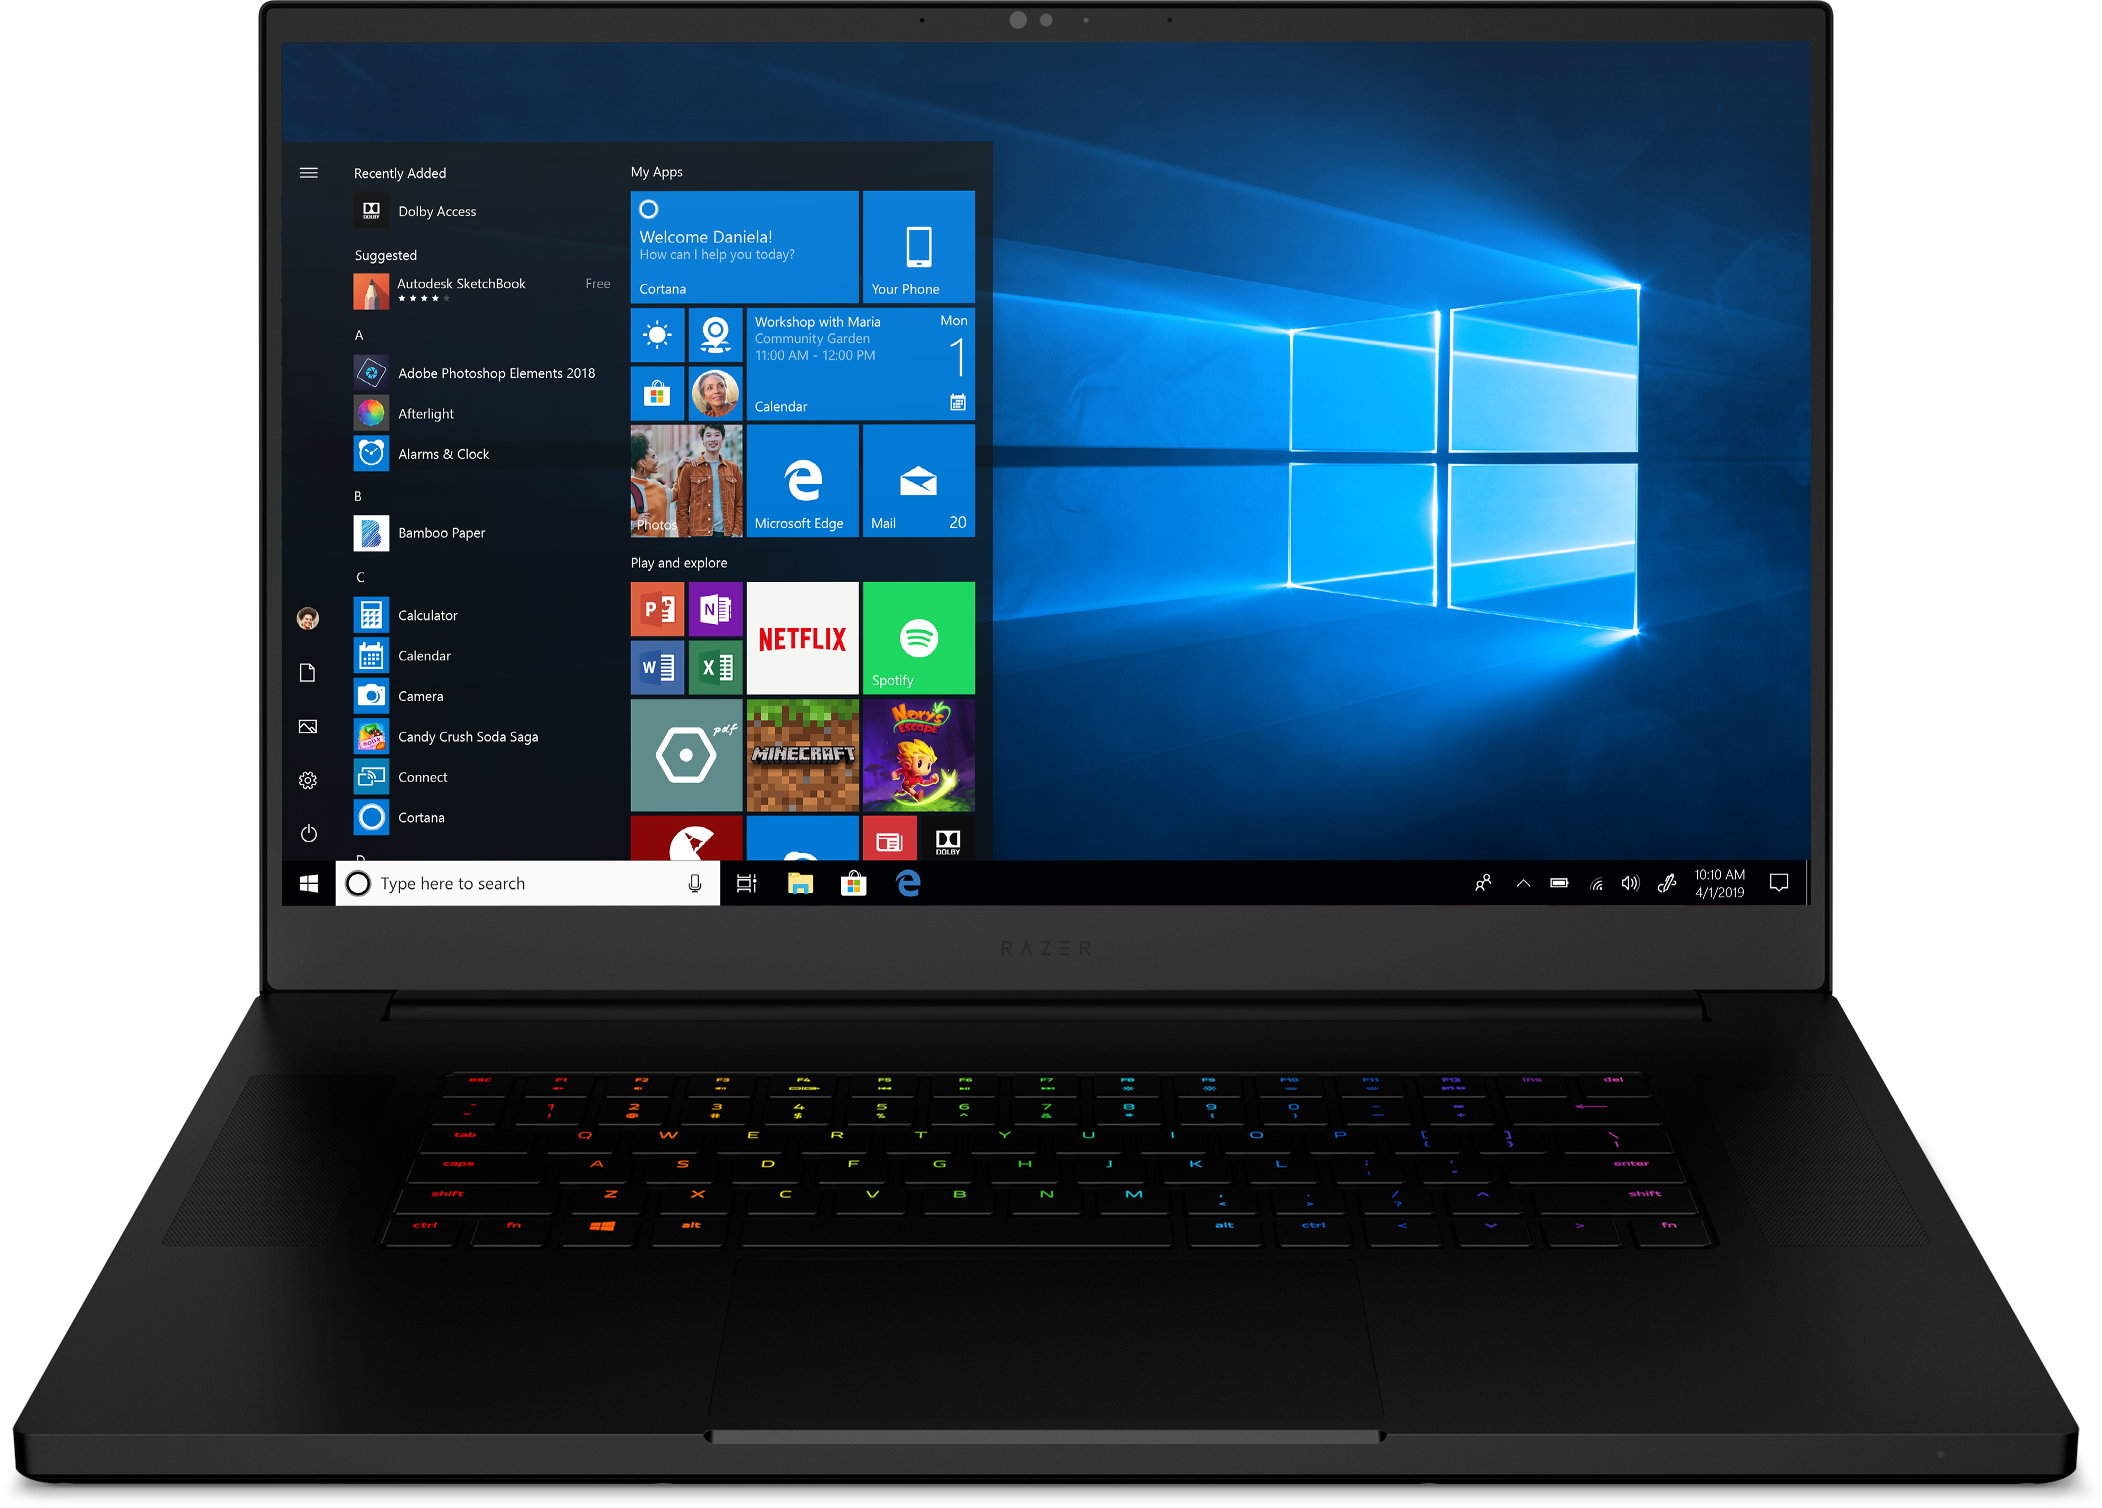 Buy Razer Blade Pro 17 Gaming Laptop 2019 - Intel Core i7